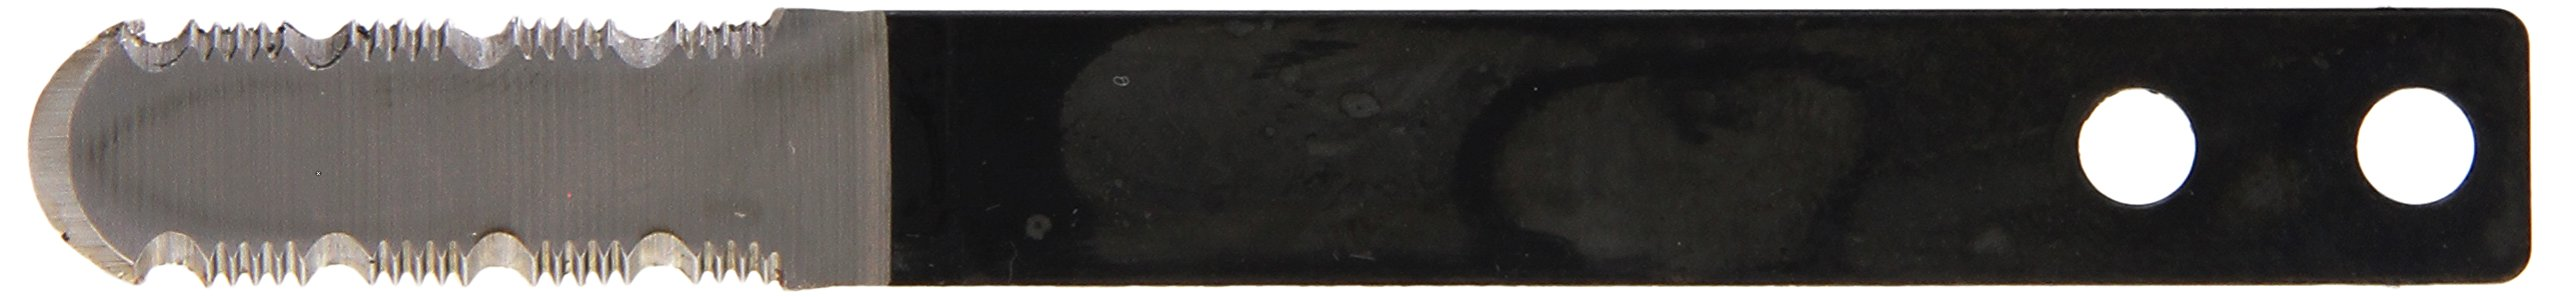 Astro 17704 4'' Serrated Blade for 1770 Deluxe Air Windshield Remover